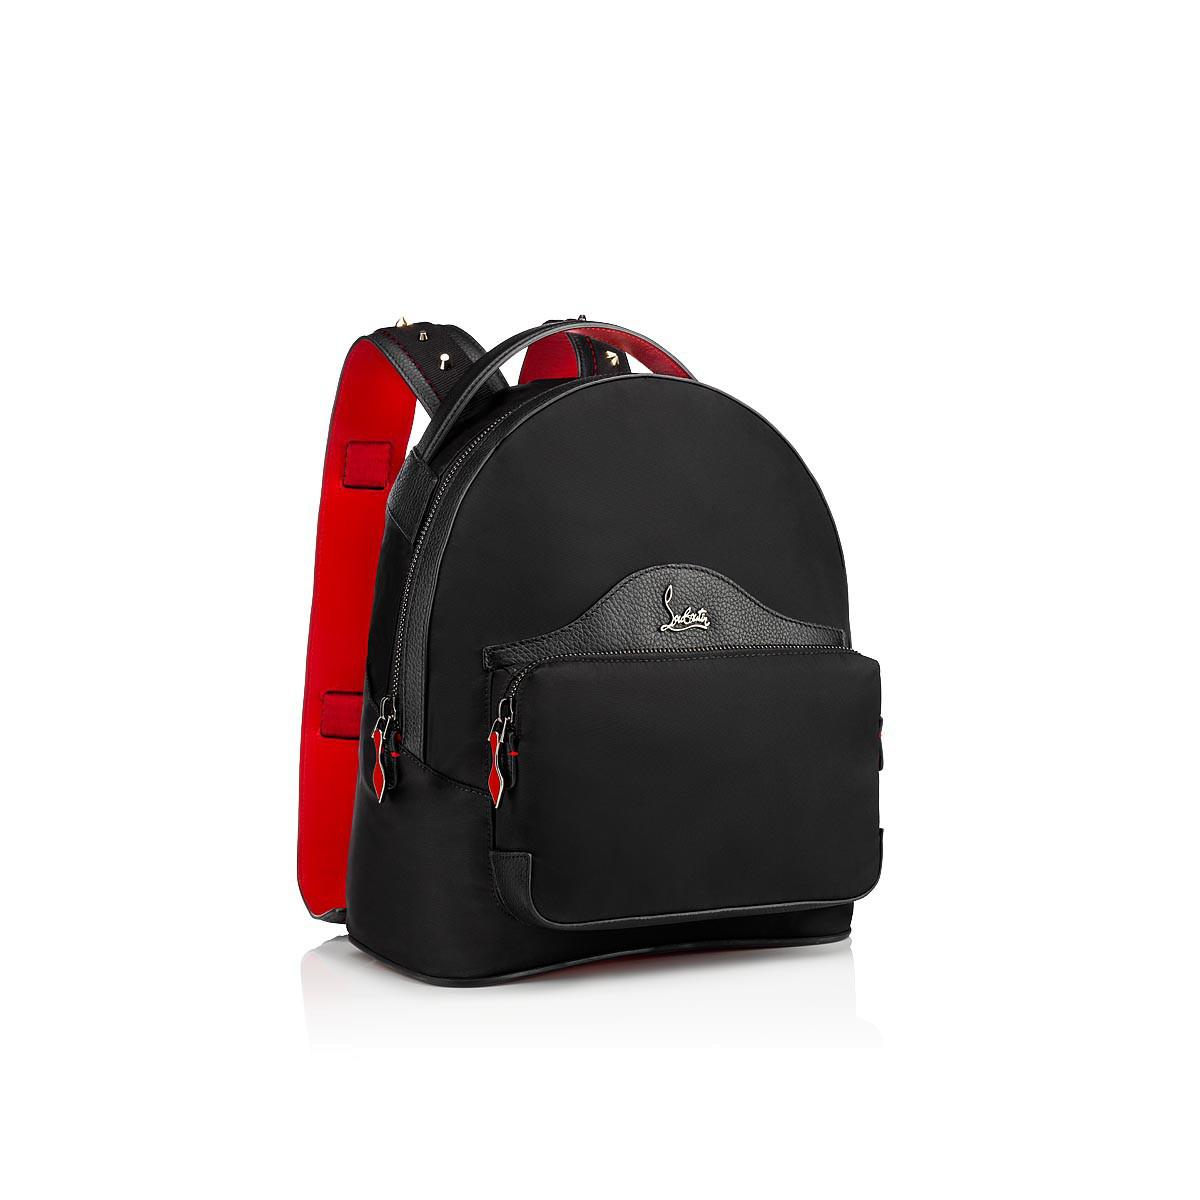 f6af3596ae8 Lyst - Christian Louboutin Backloubi Small Backpack Black Nylon in Black